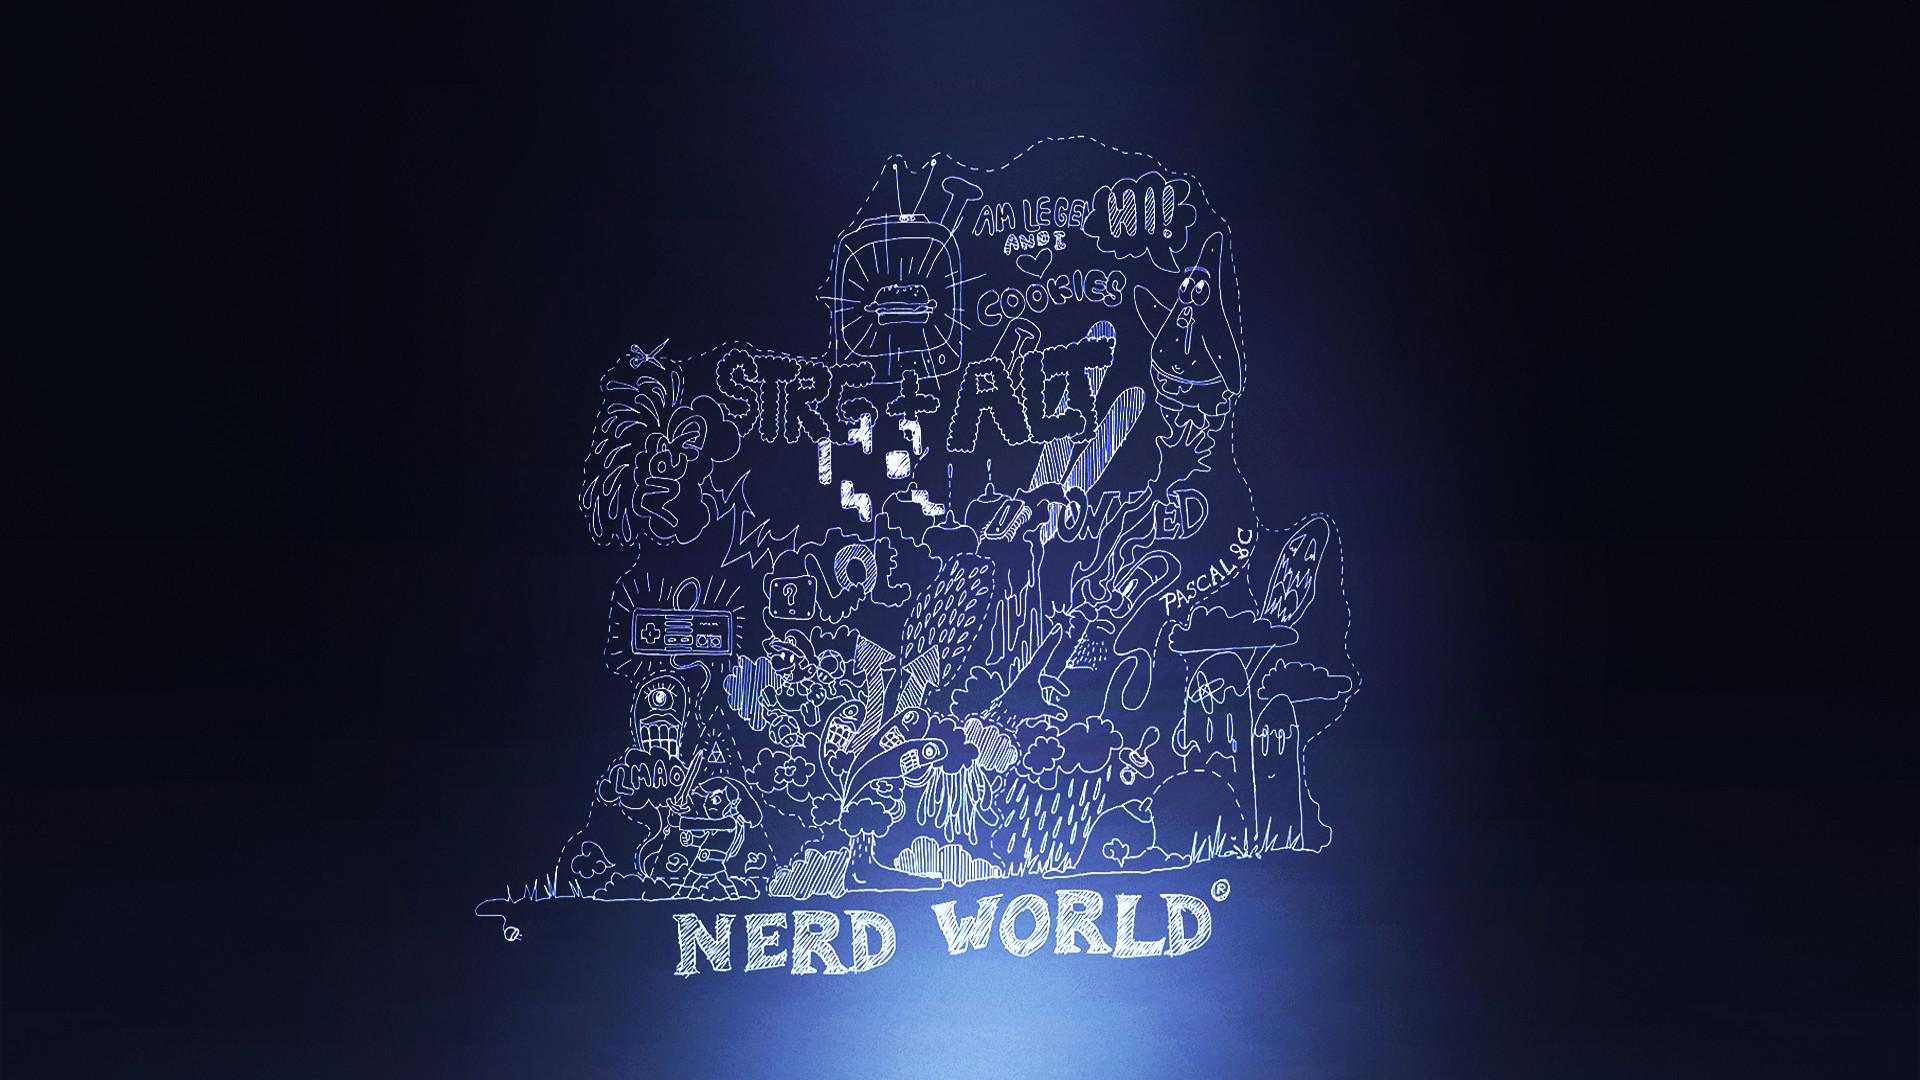 Nerdy Wallpapers